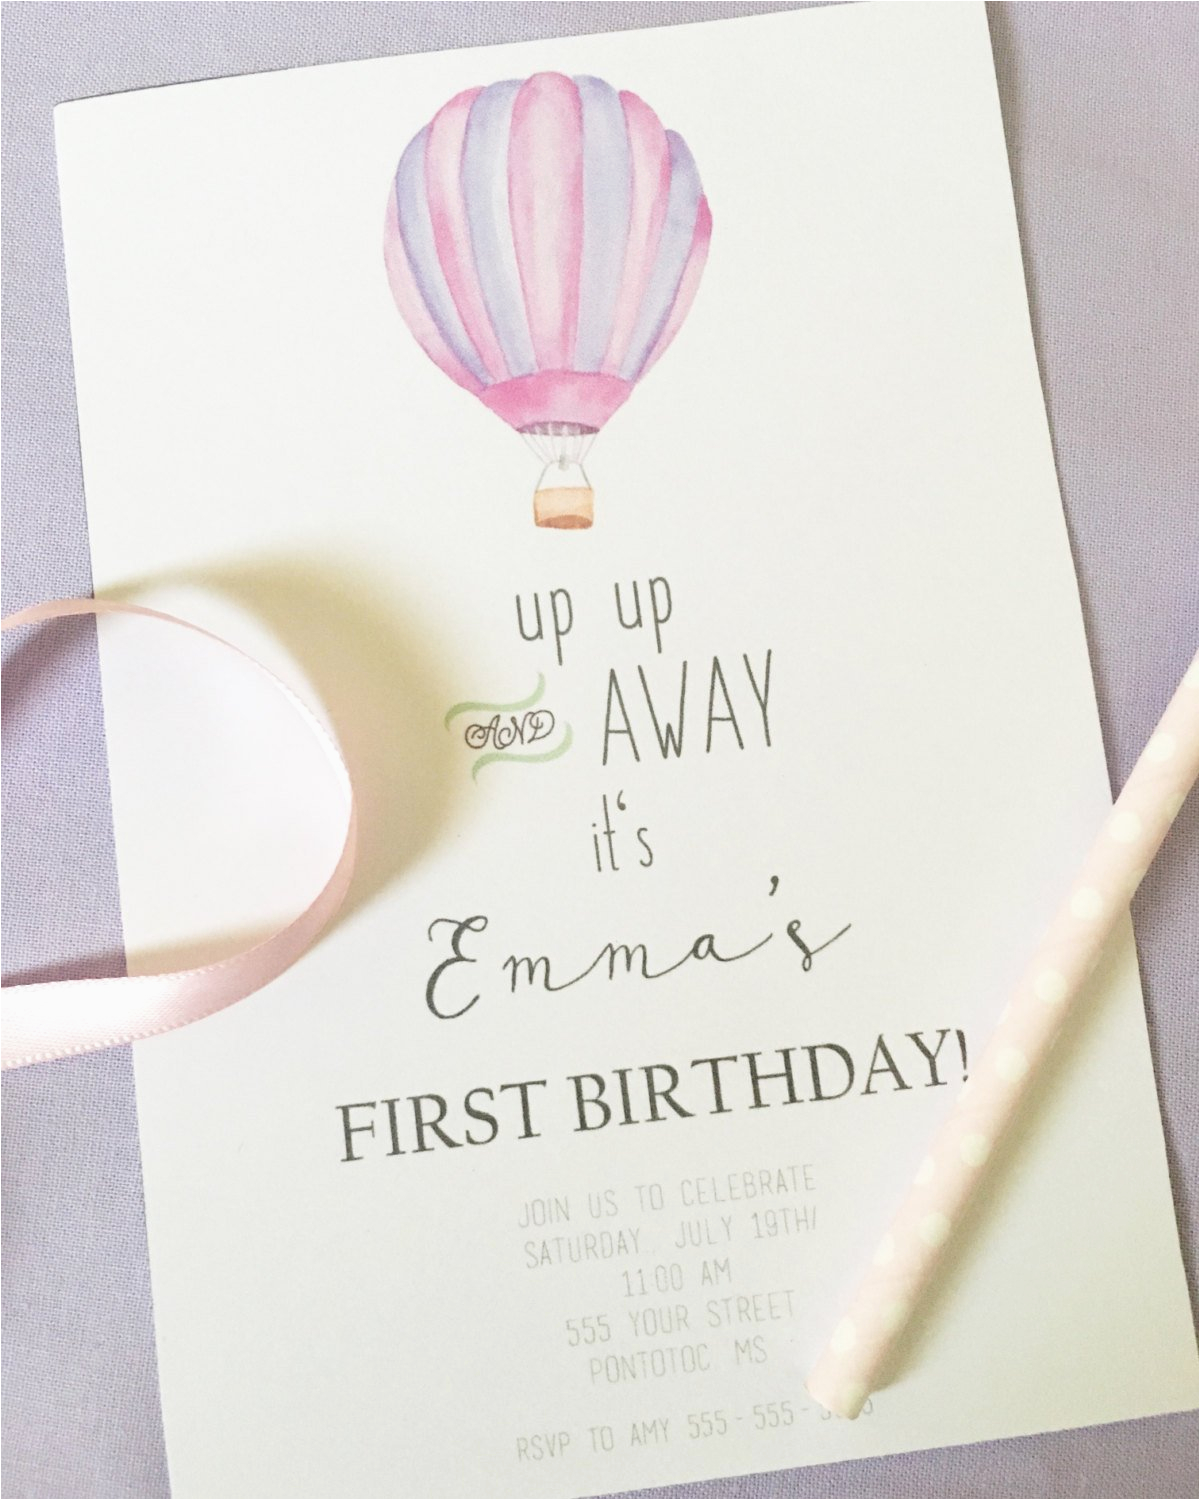 Up Up and Away Birthday Invitations Up Up and Away Invitation Children 39 S Birthday Invitation